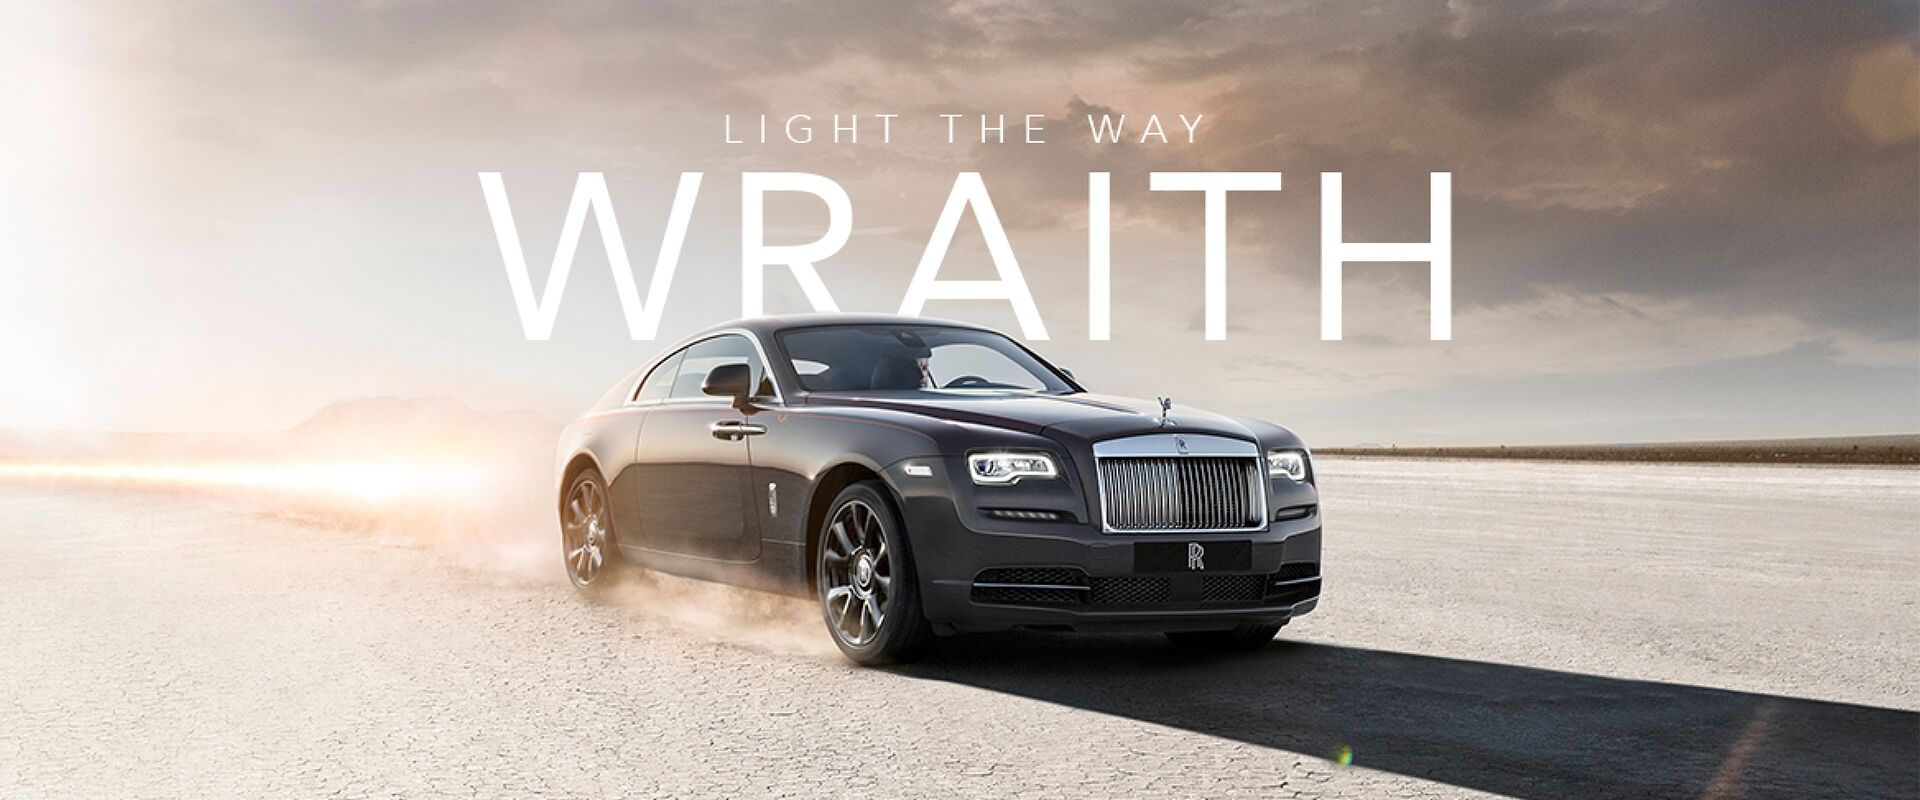 Wraith Light the Way